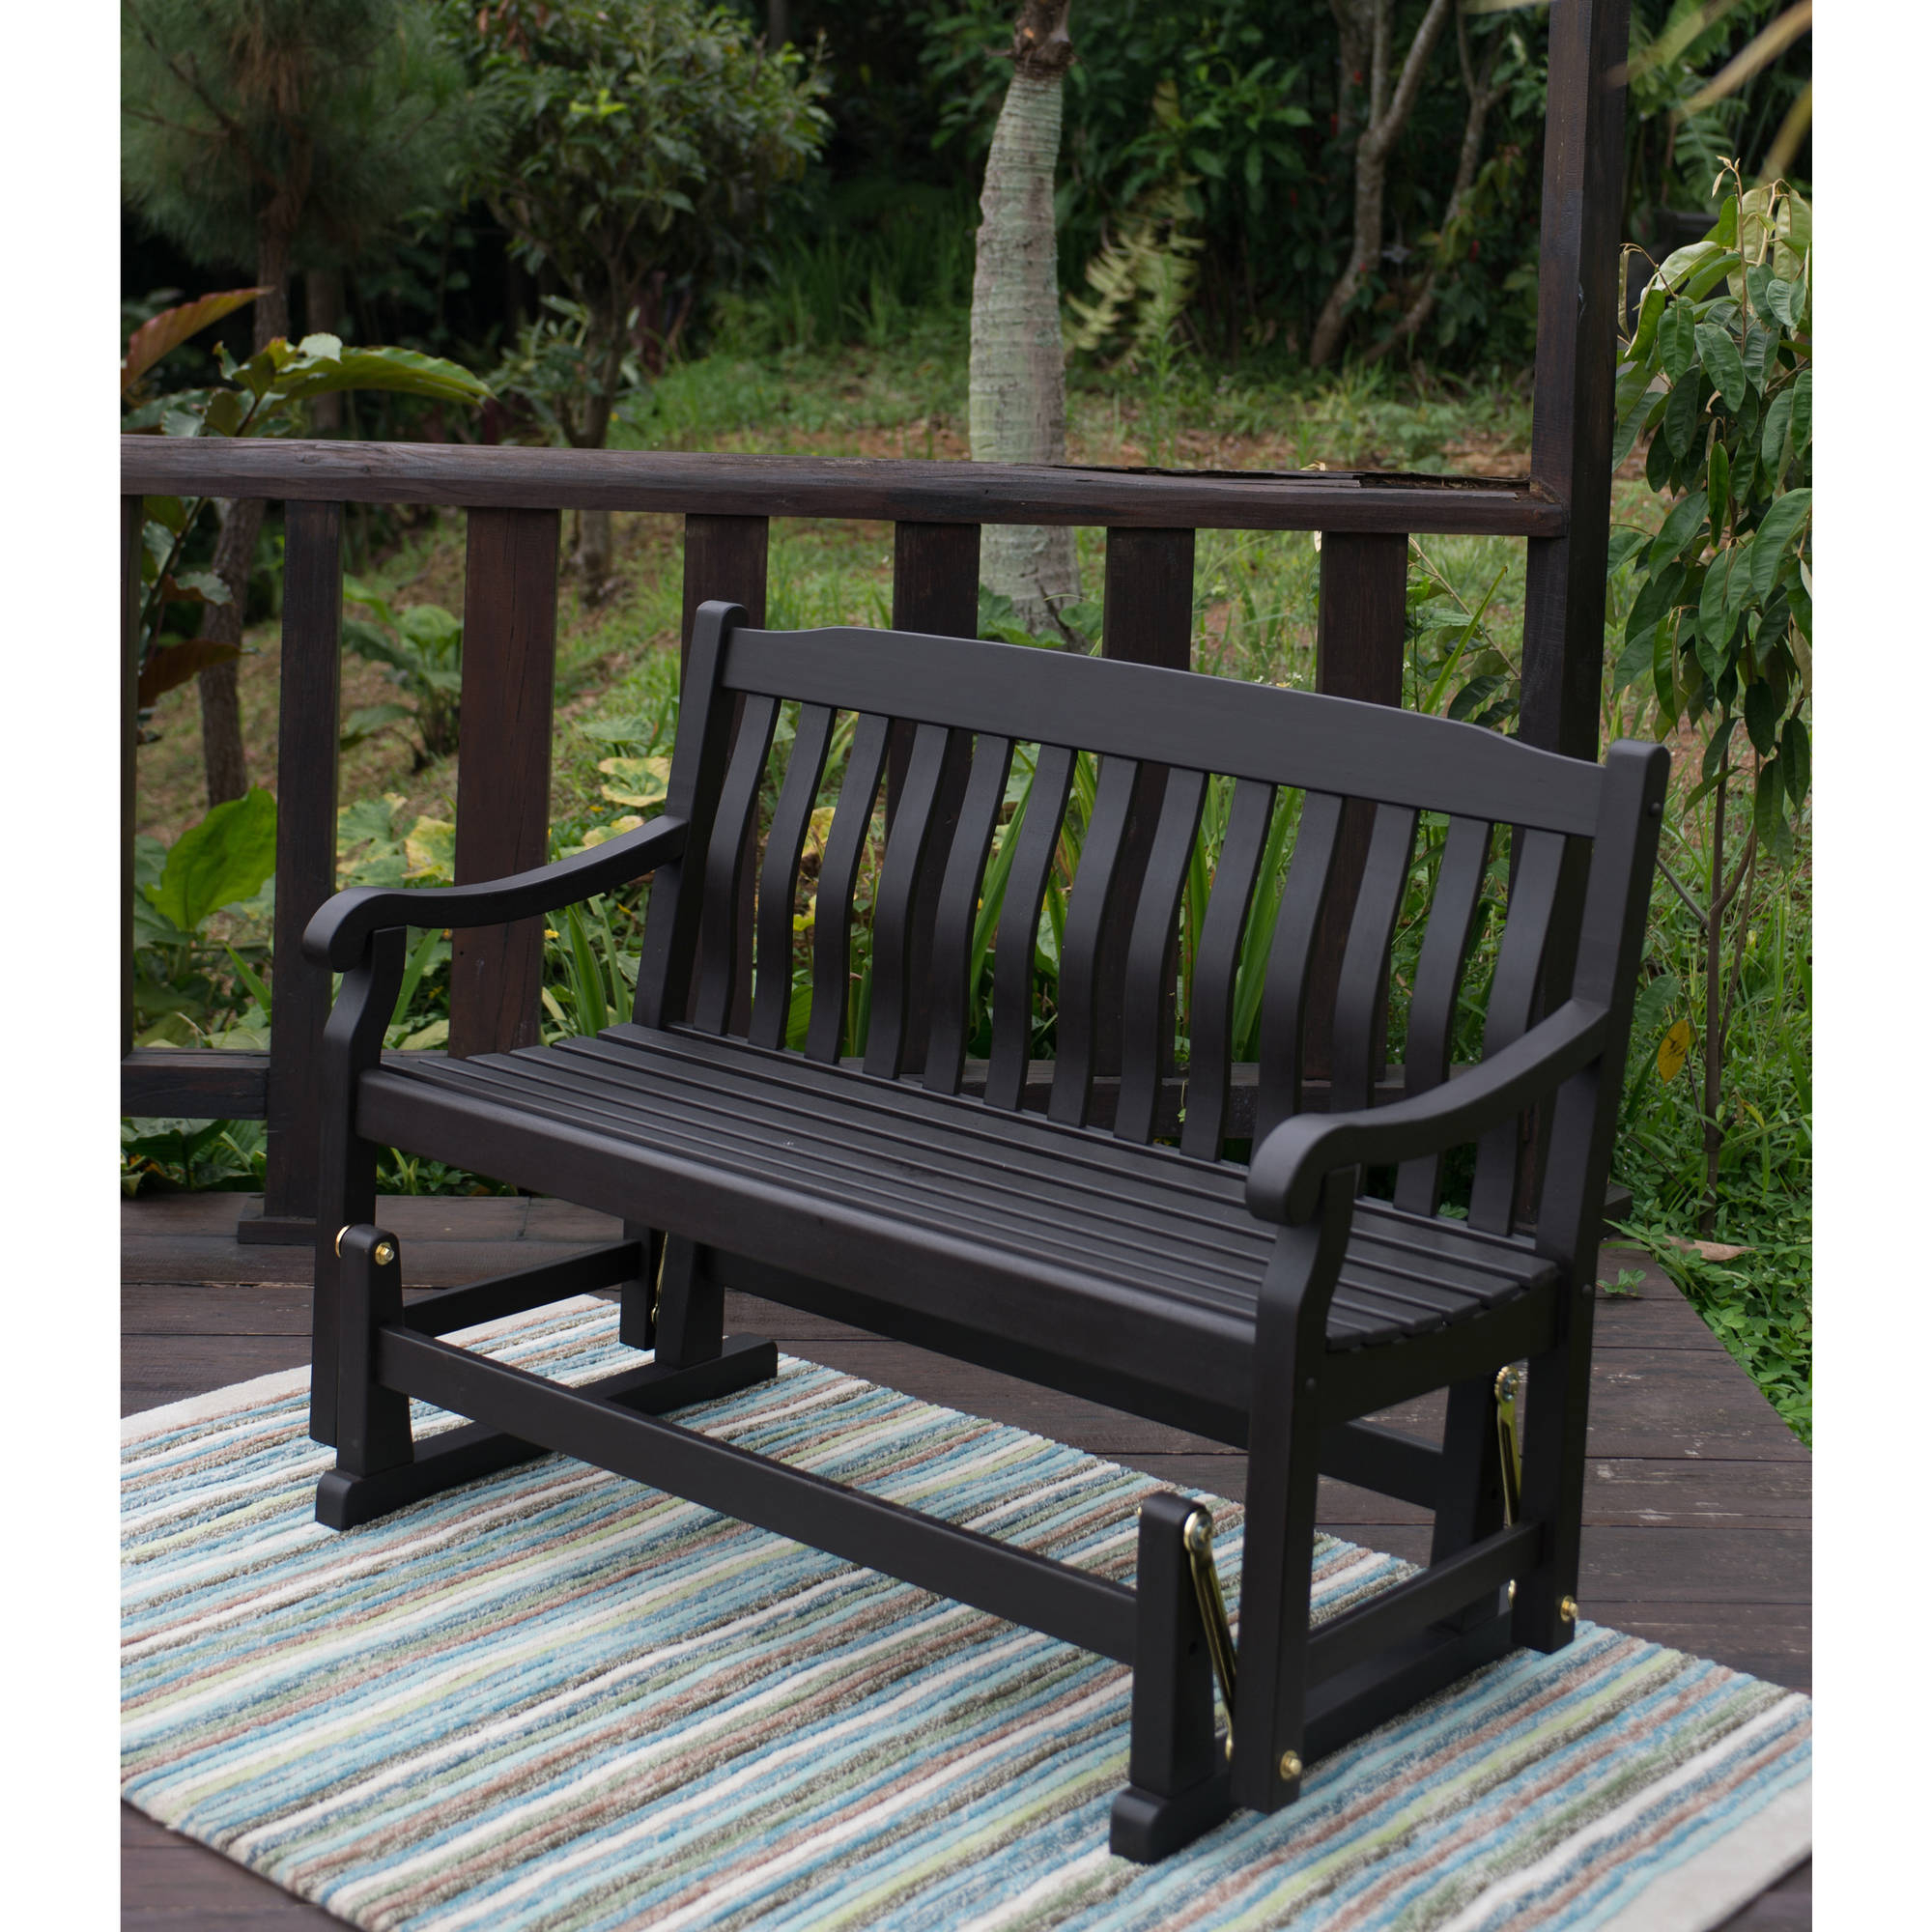 Better Homes & Gardens Delahey Outdoor Glider Bench, Dark Brown – Walmart Pertaining To Popular 2 Person Antique Black Iron Outdoor Gliders (View 5 of 25)